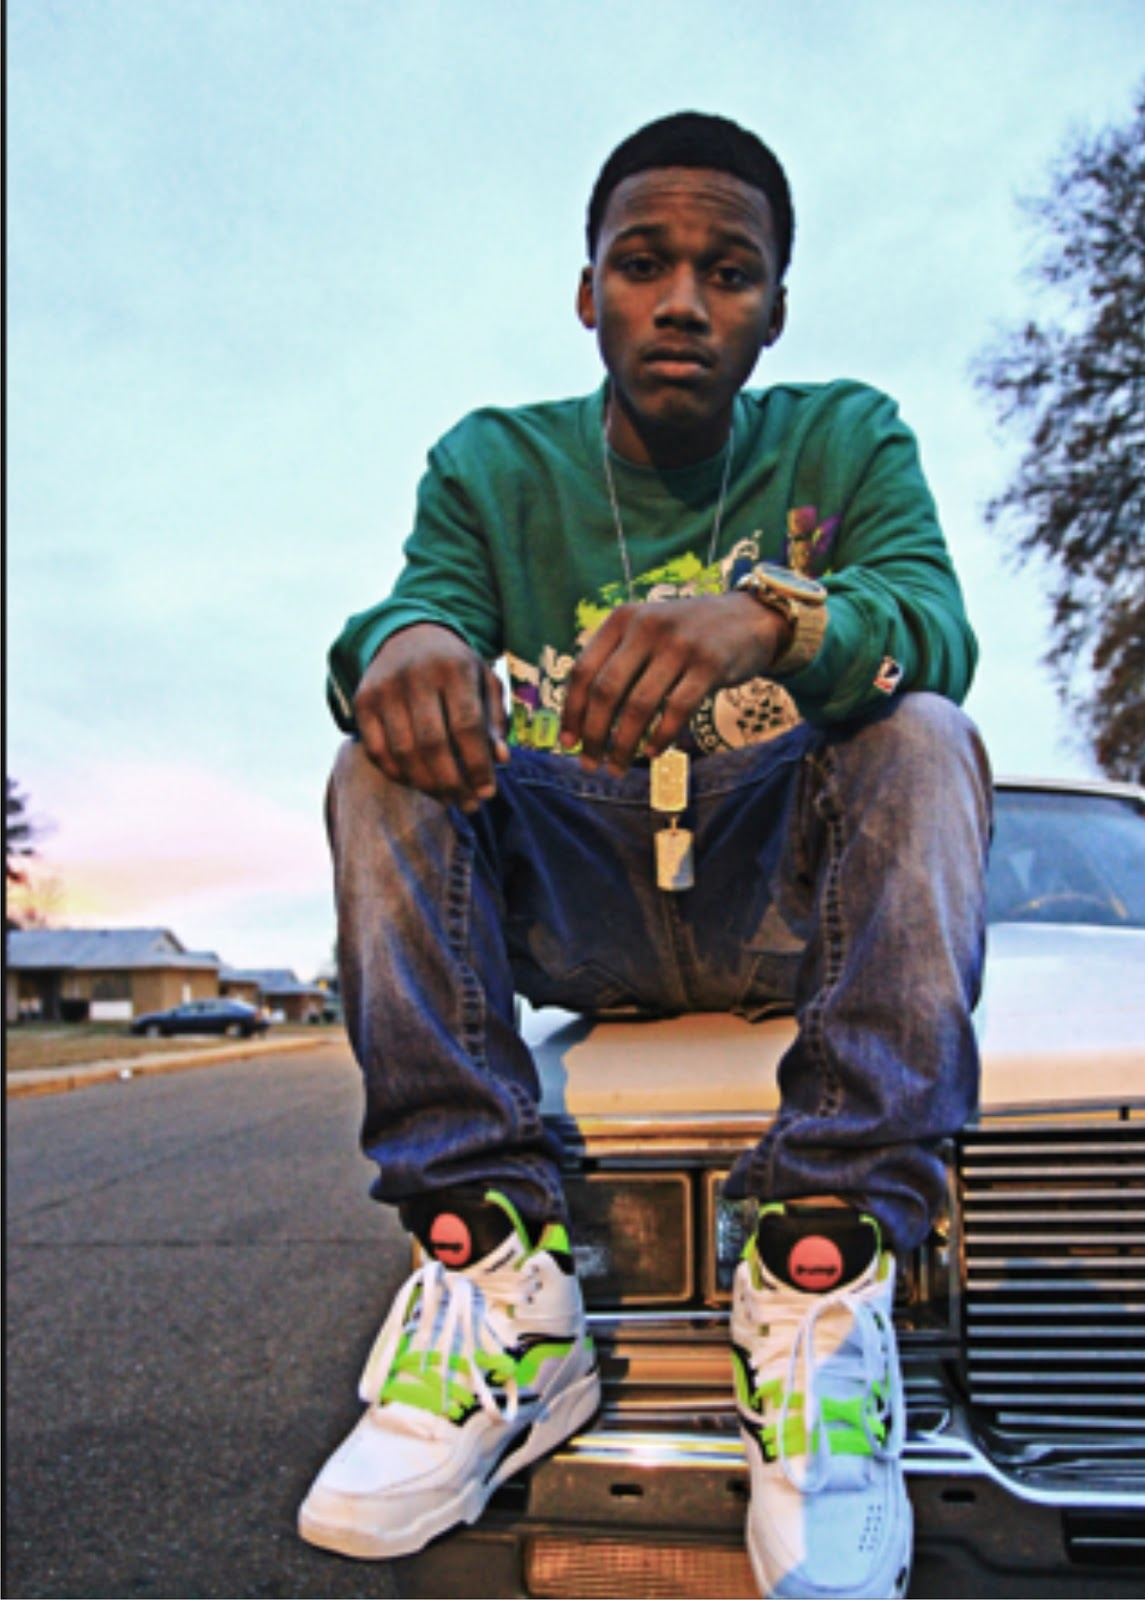 lil snupe Lyrics to 'let me ride (freestyle)' by lil snupe ahh, lil snupe nigga / real niggas come first, always remember that / shoutout my nigga chad moe to nigga, go.